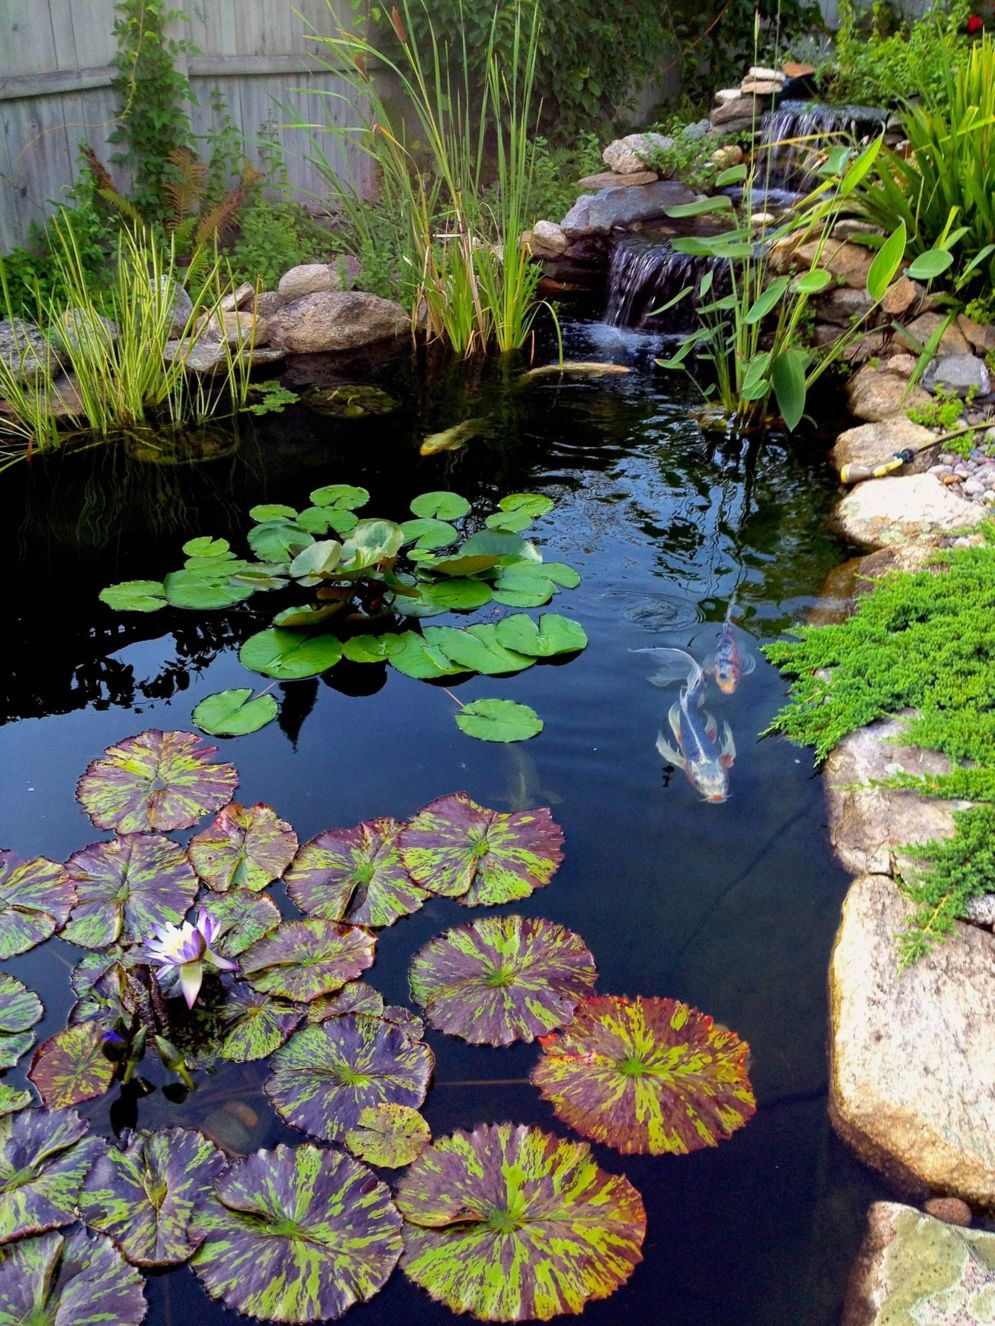 Water garden ideas for more natural backyard feeling with beautiful aquatic plants and ponds Image 30